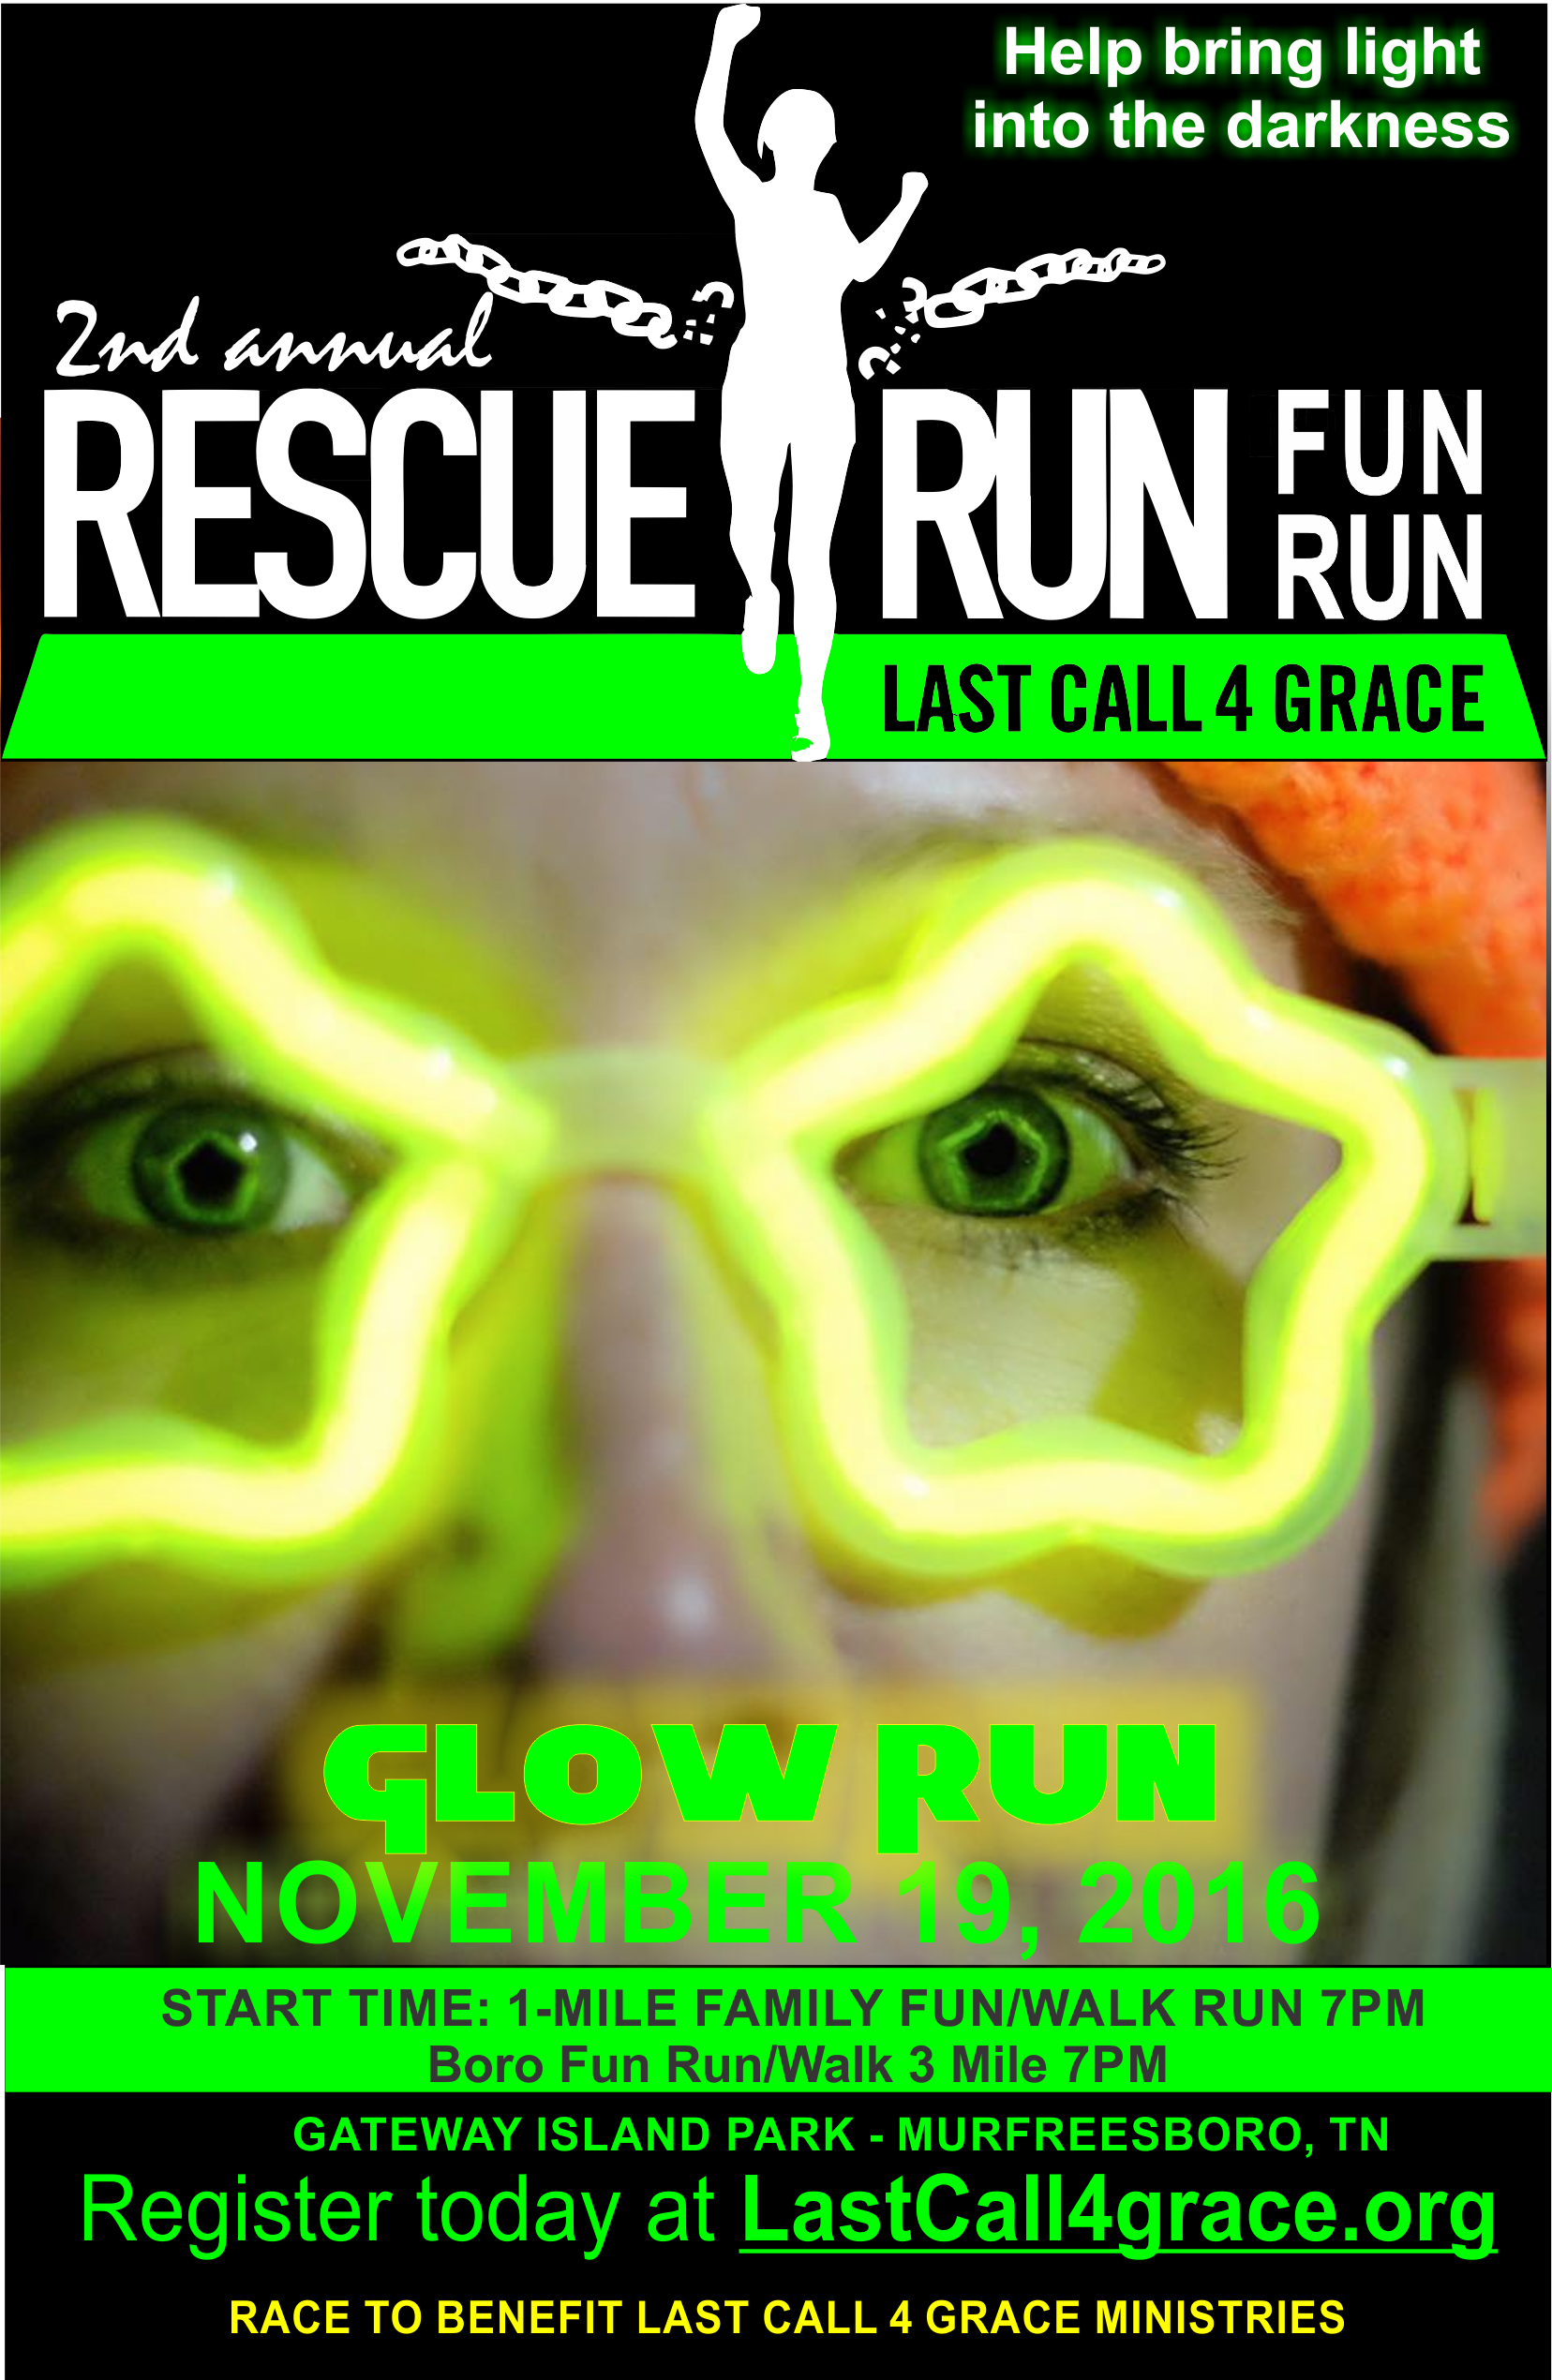 The annual Rescue Run is THIS SATURDAY NIGHT